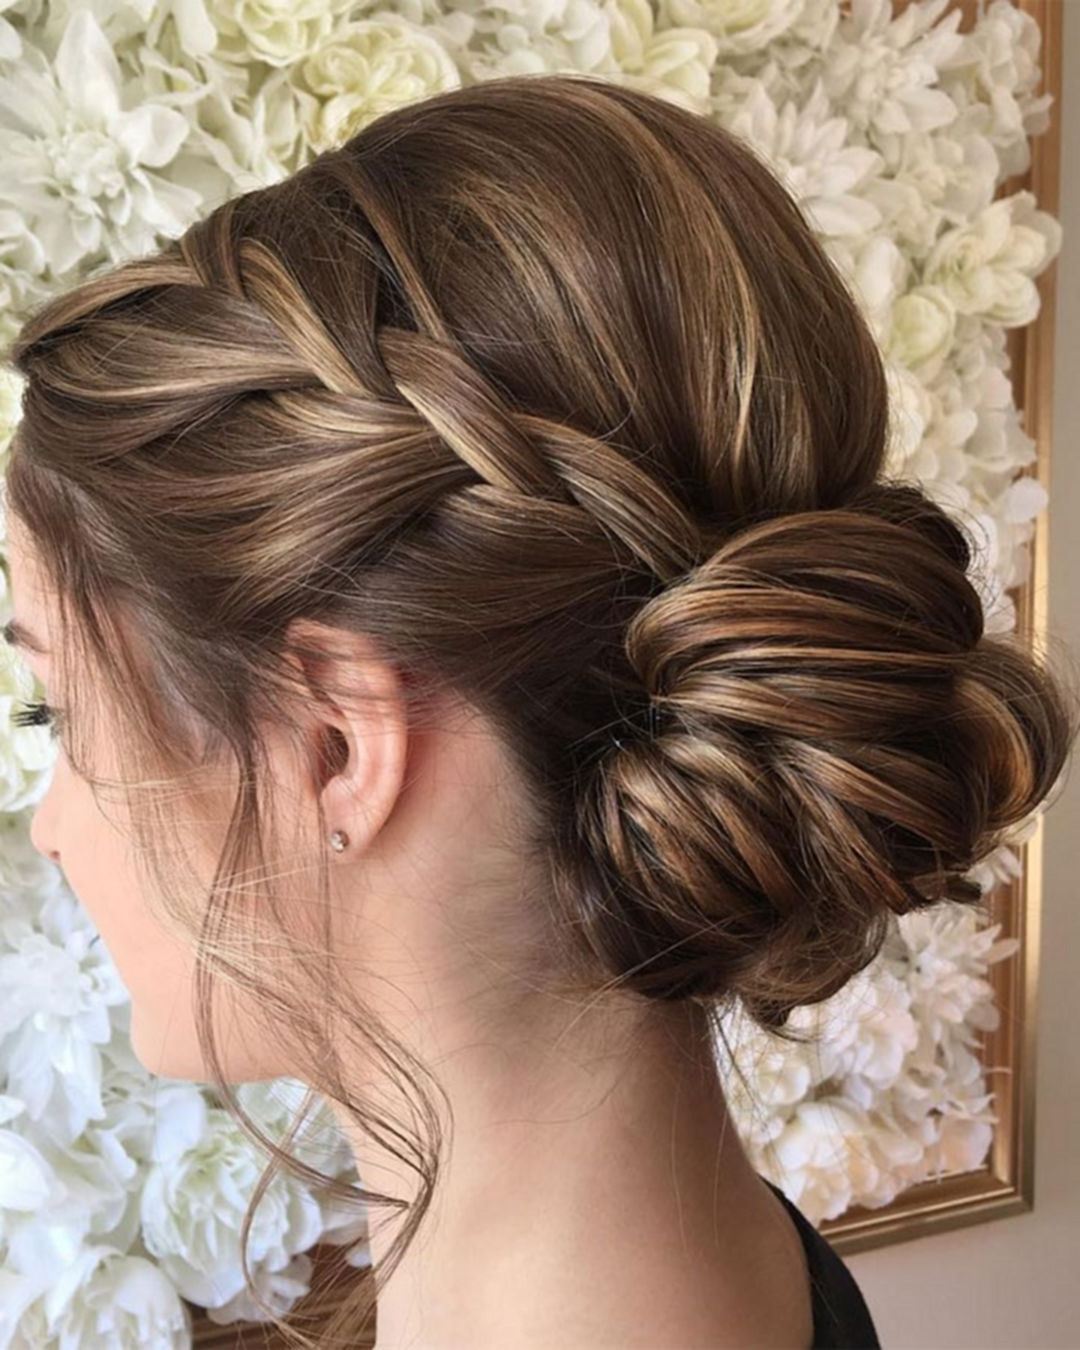 60+ Wonderful Bridesmaid Updo Hairstyles | Bridesmaid Updo In Hairstyles For Bridesmaids Updos (View 2 of 15)